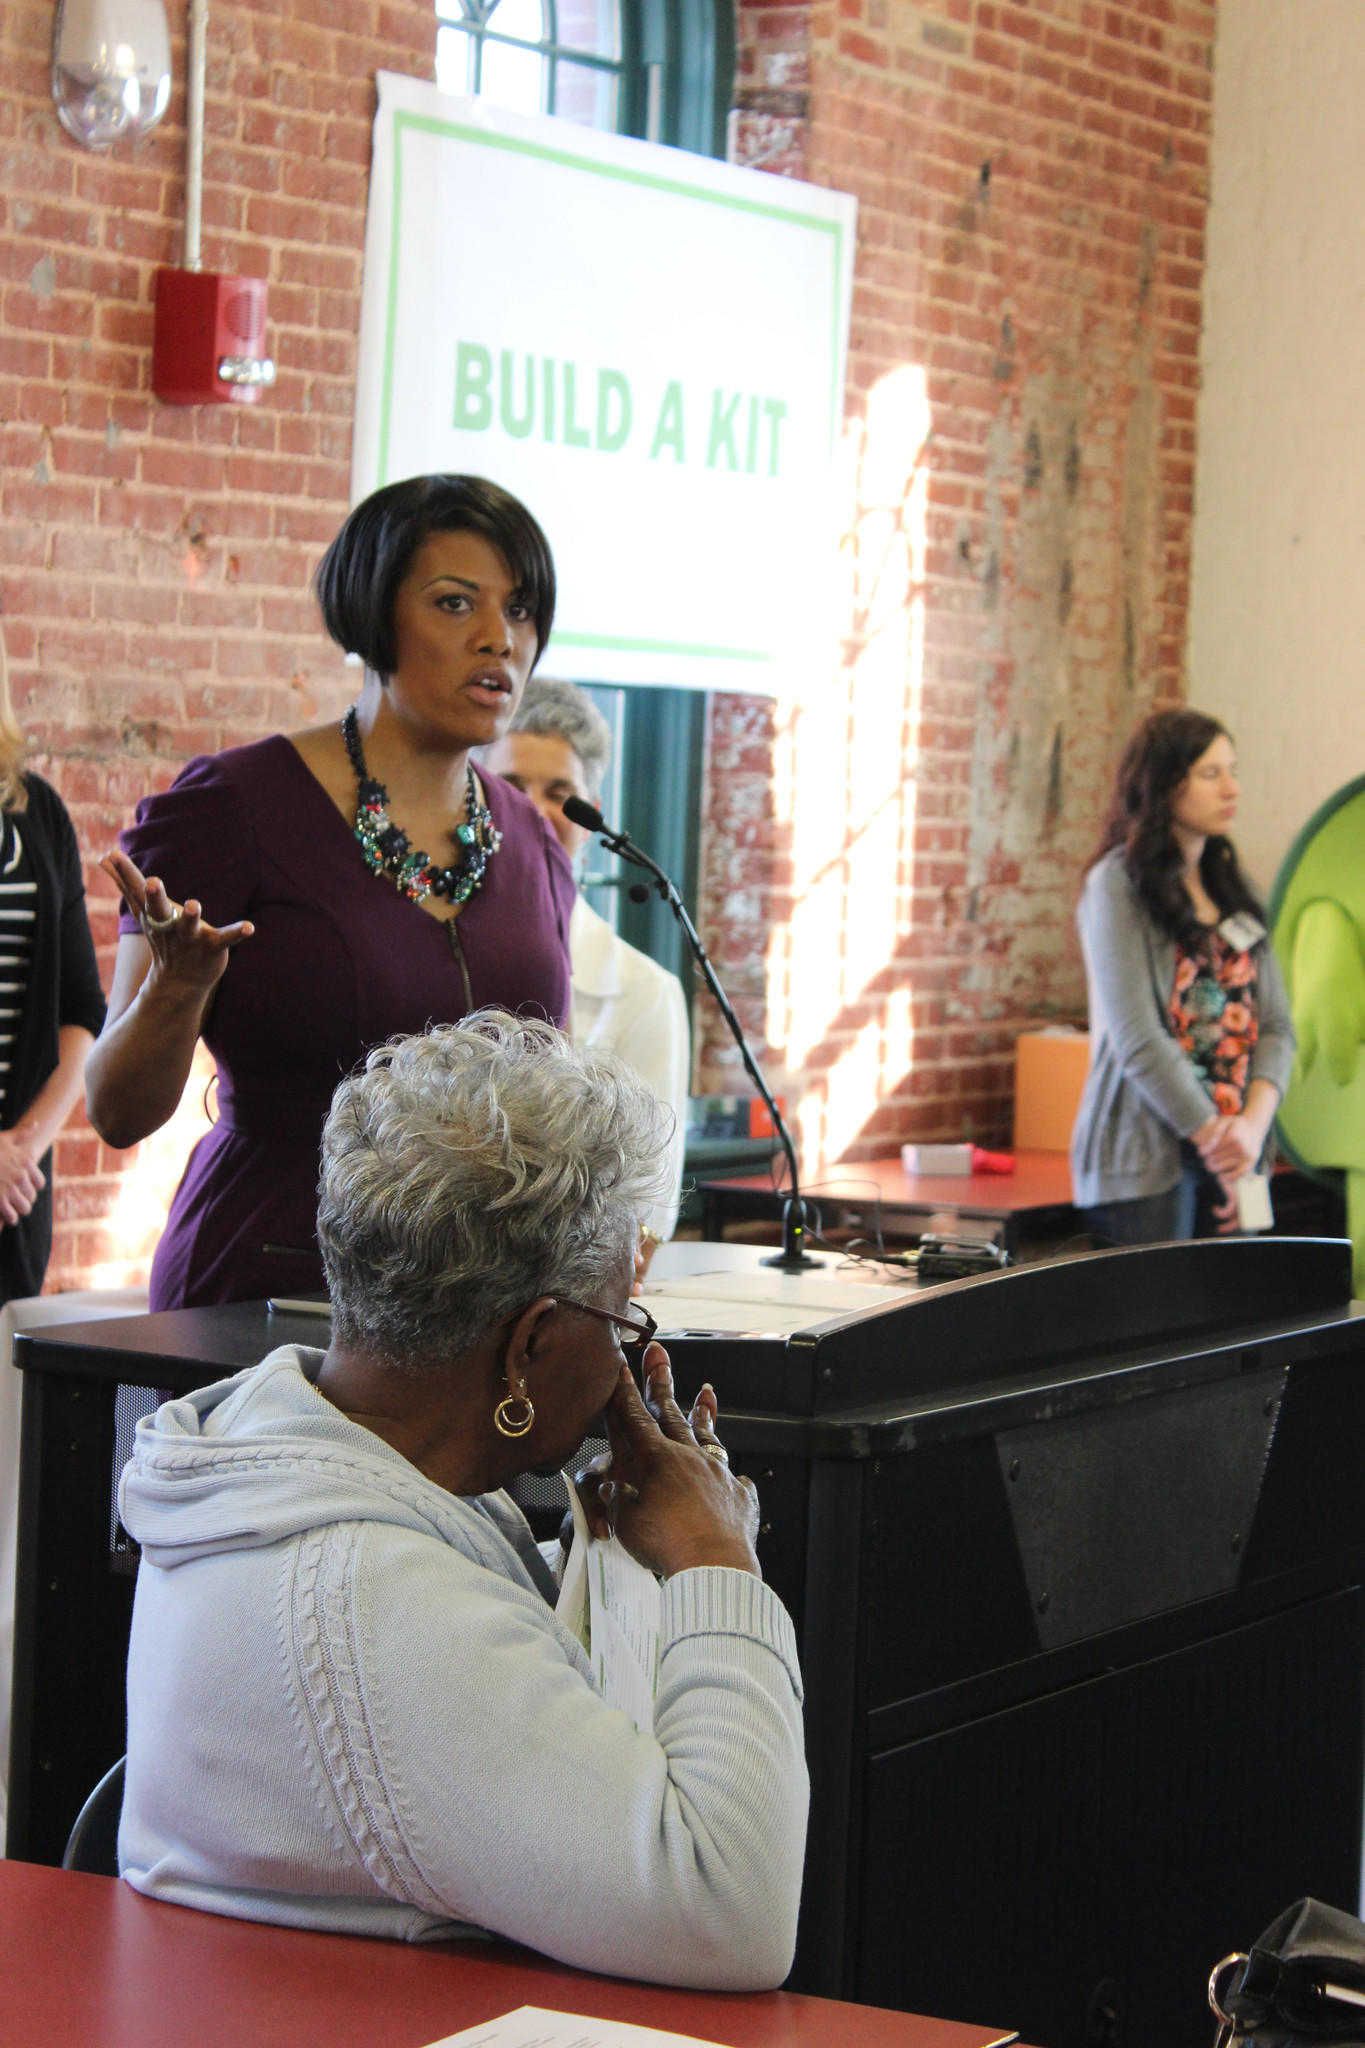 The Baltimore Office of Sustainability held a event Tuesday to teach city residents about emergency preparedness. Residents were provided advice, plans and free emergency kits at the event, which was attended by Mayor Stephanie Rawlings-Blake.